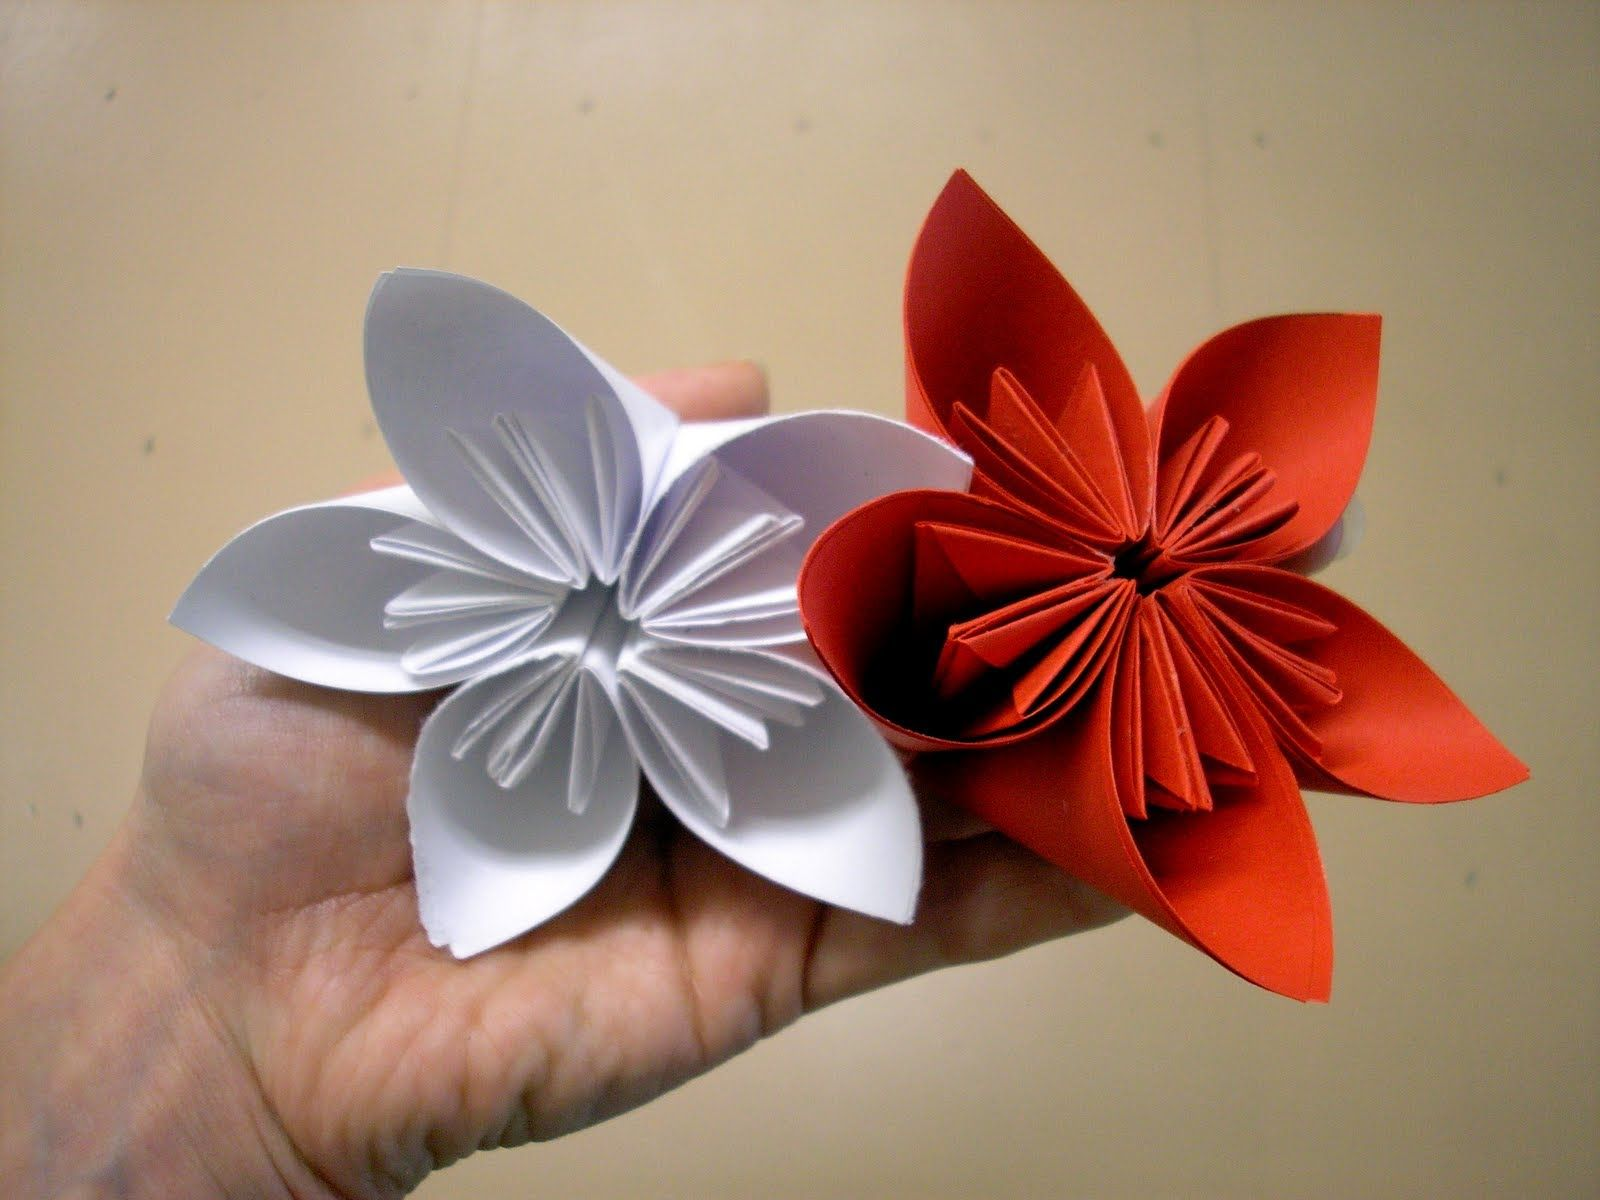 Origami flower with printer paper vatozozdevelopment origami flower with printer paper izmirmasajfo